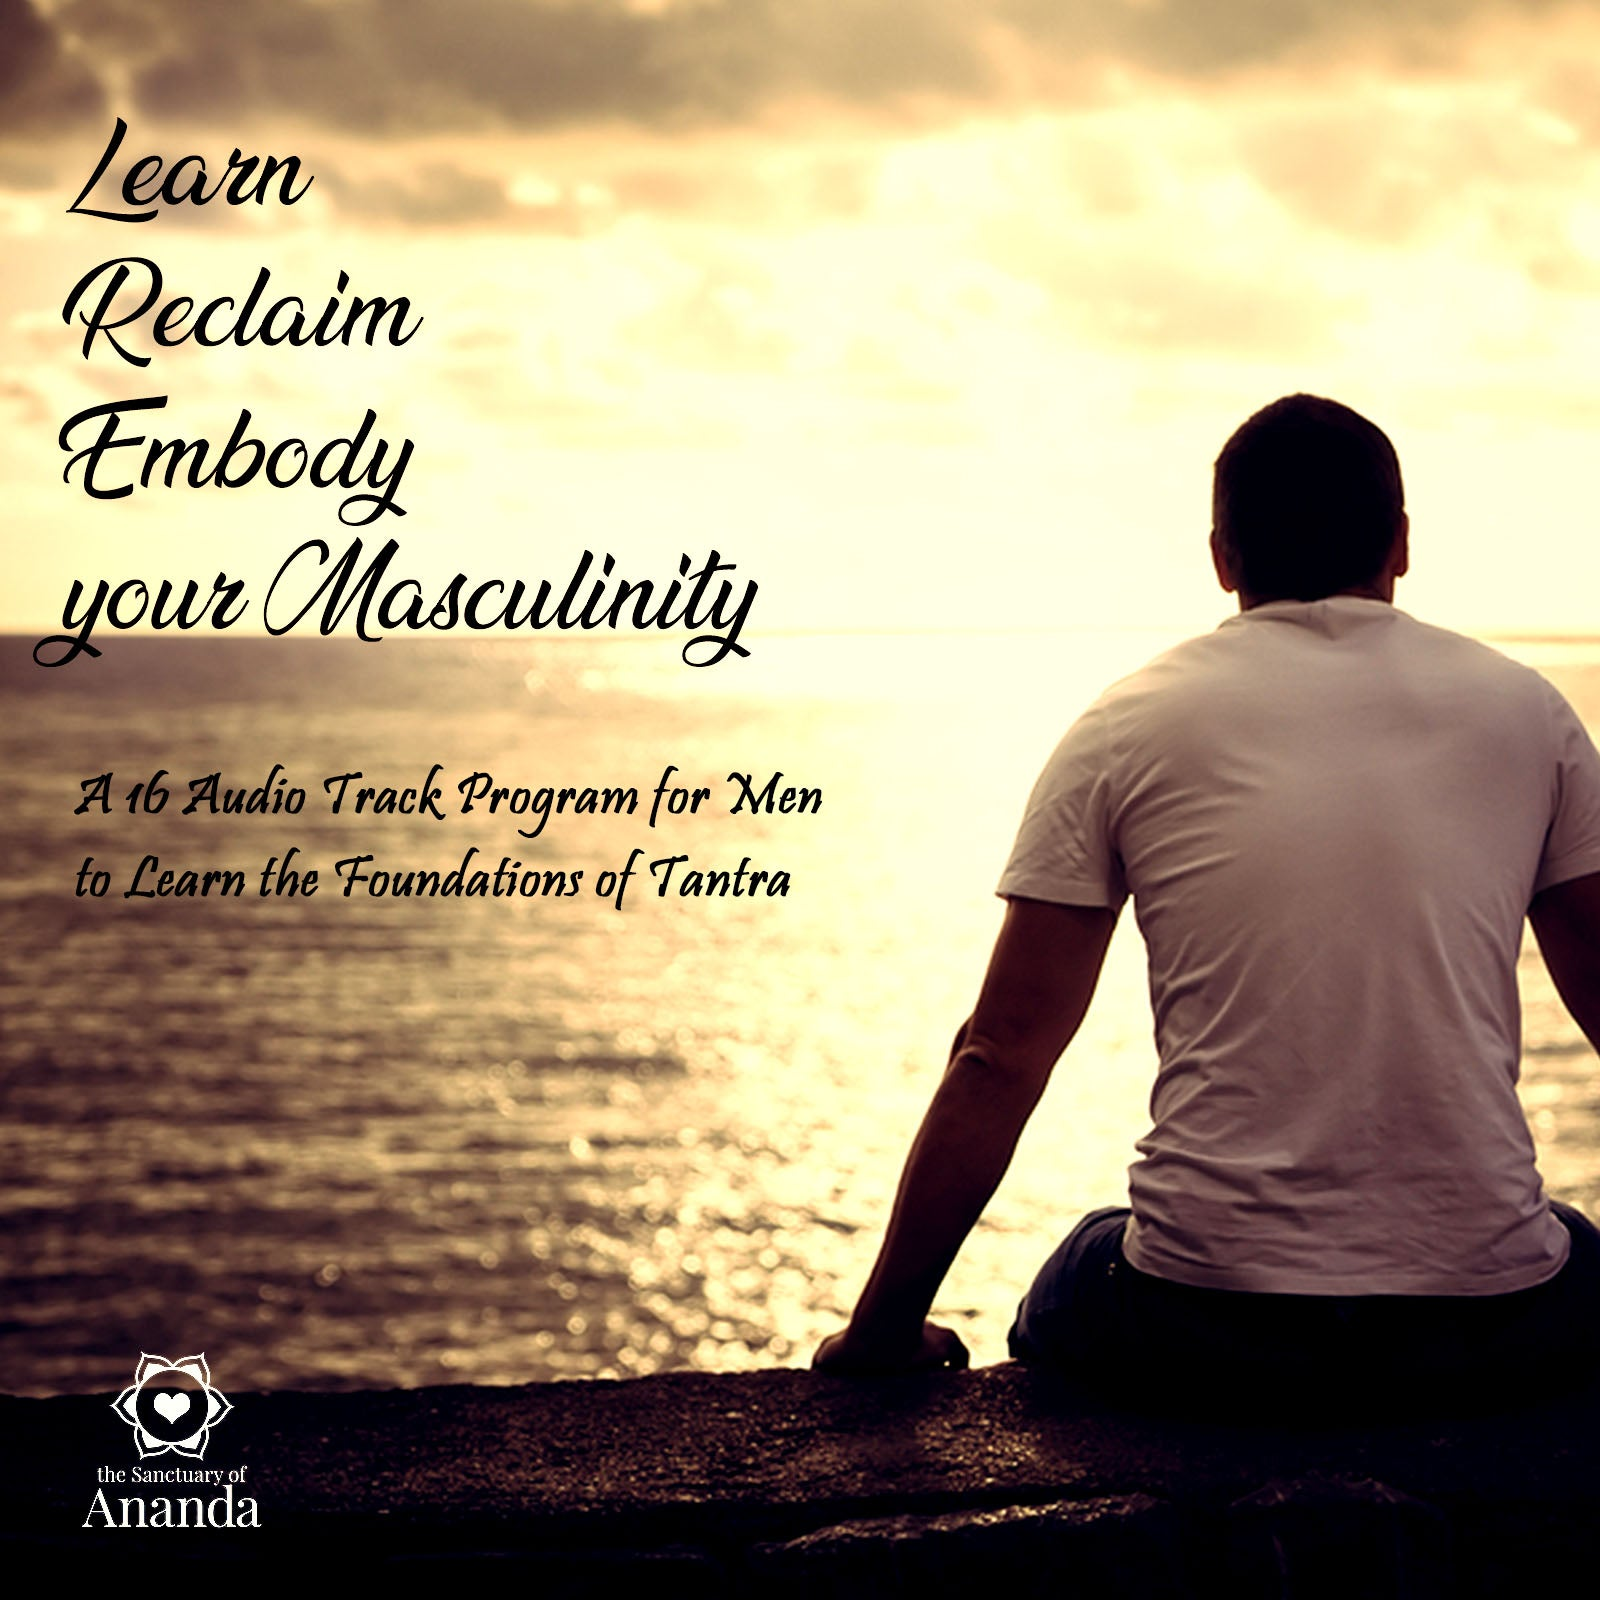 Men's Tantra Audio Program - Learn, Reclaim, Embody your Masculinity